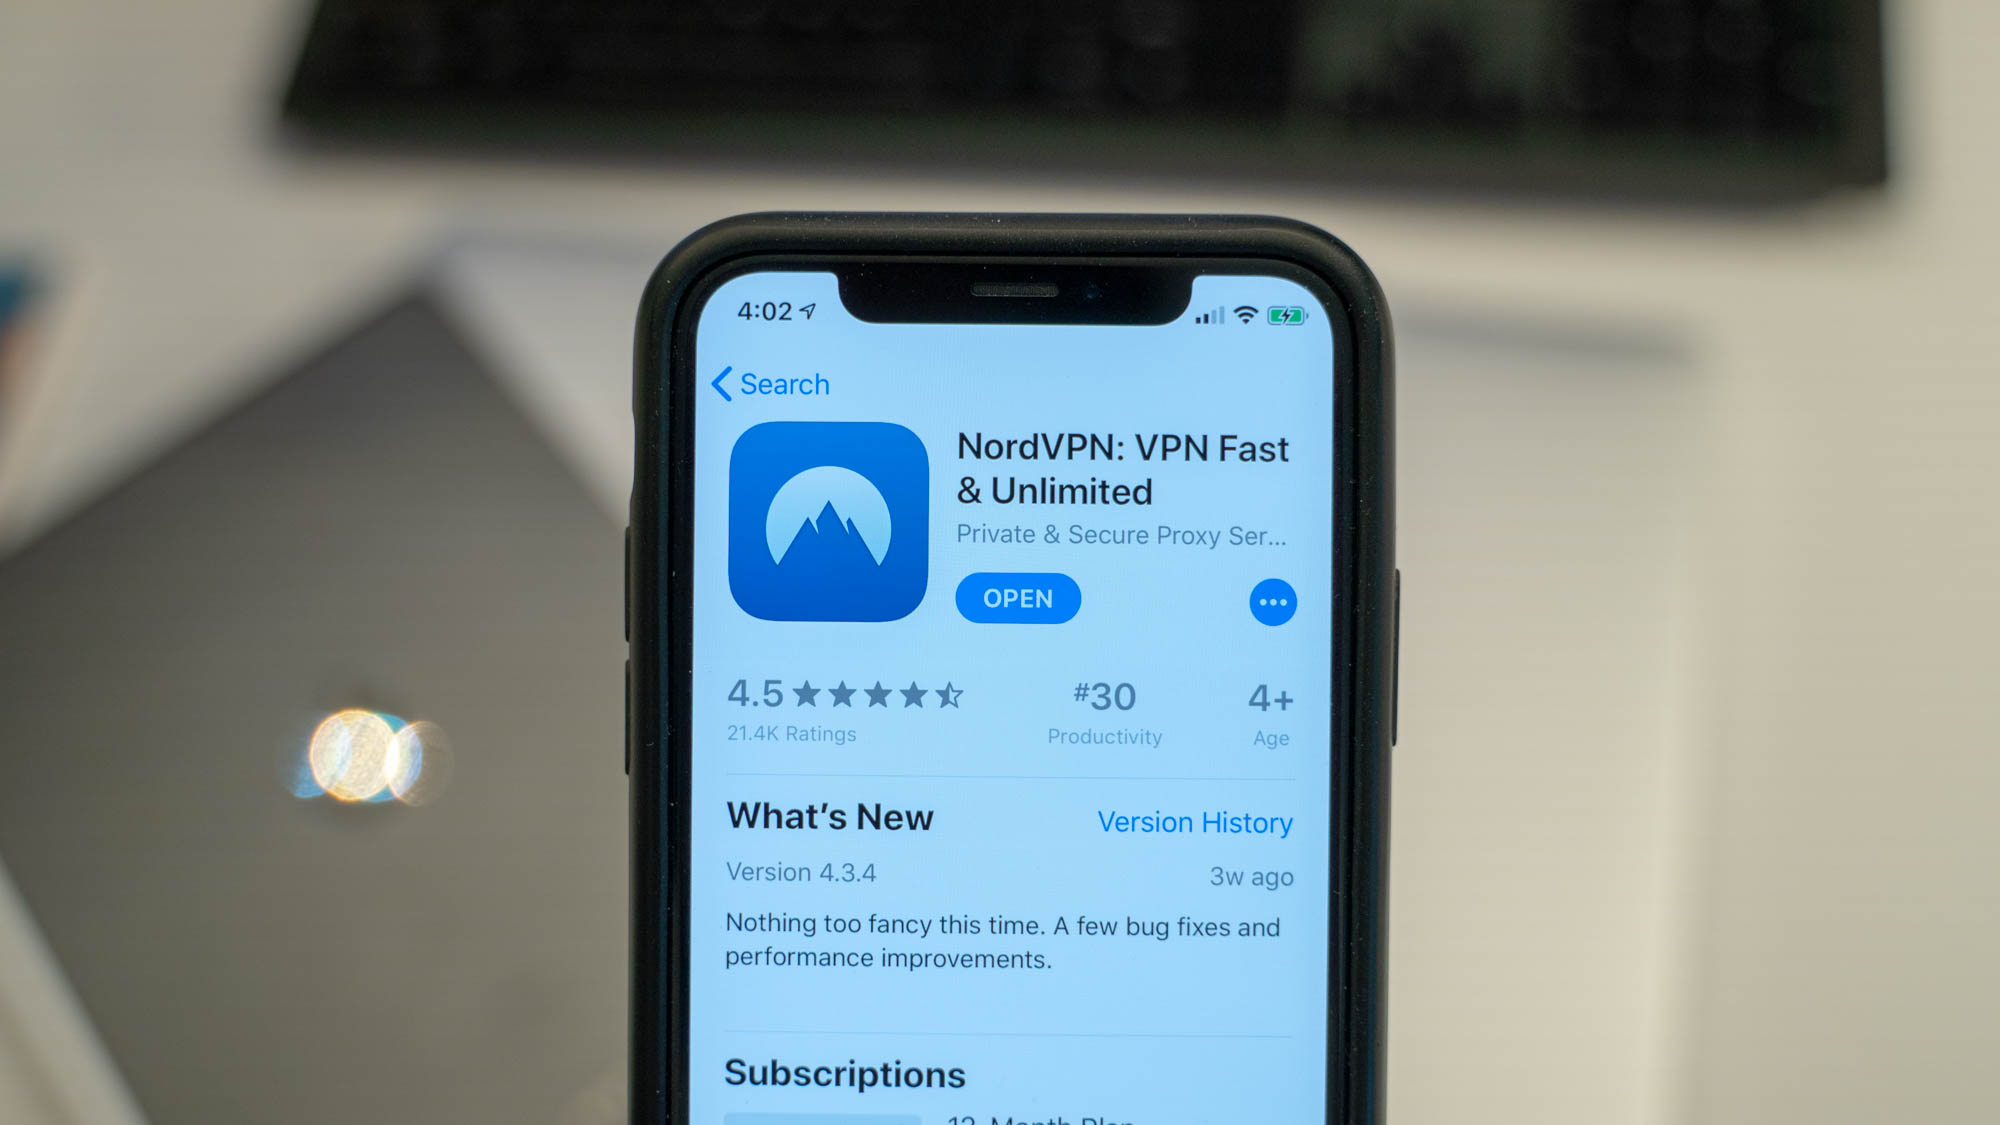 Save 70% on a 3-year NordVPN subscription and protect yourself online for $126 - 9to5Toys